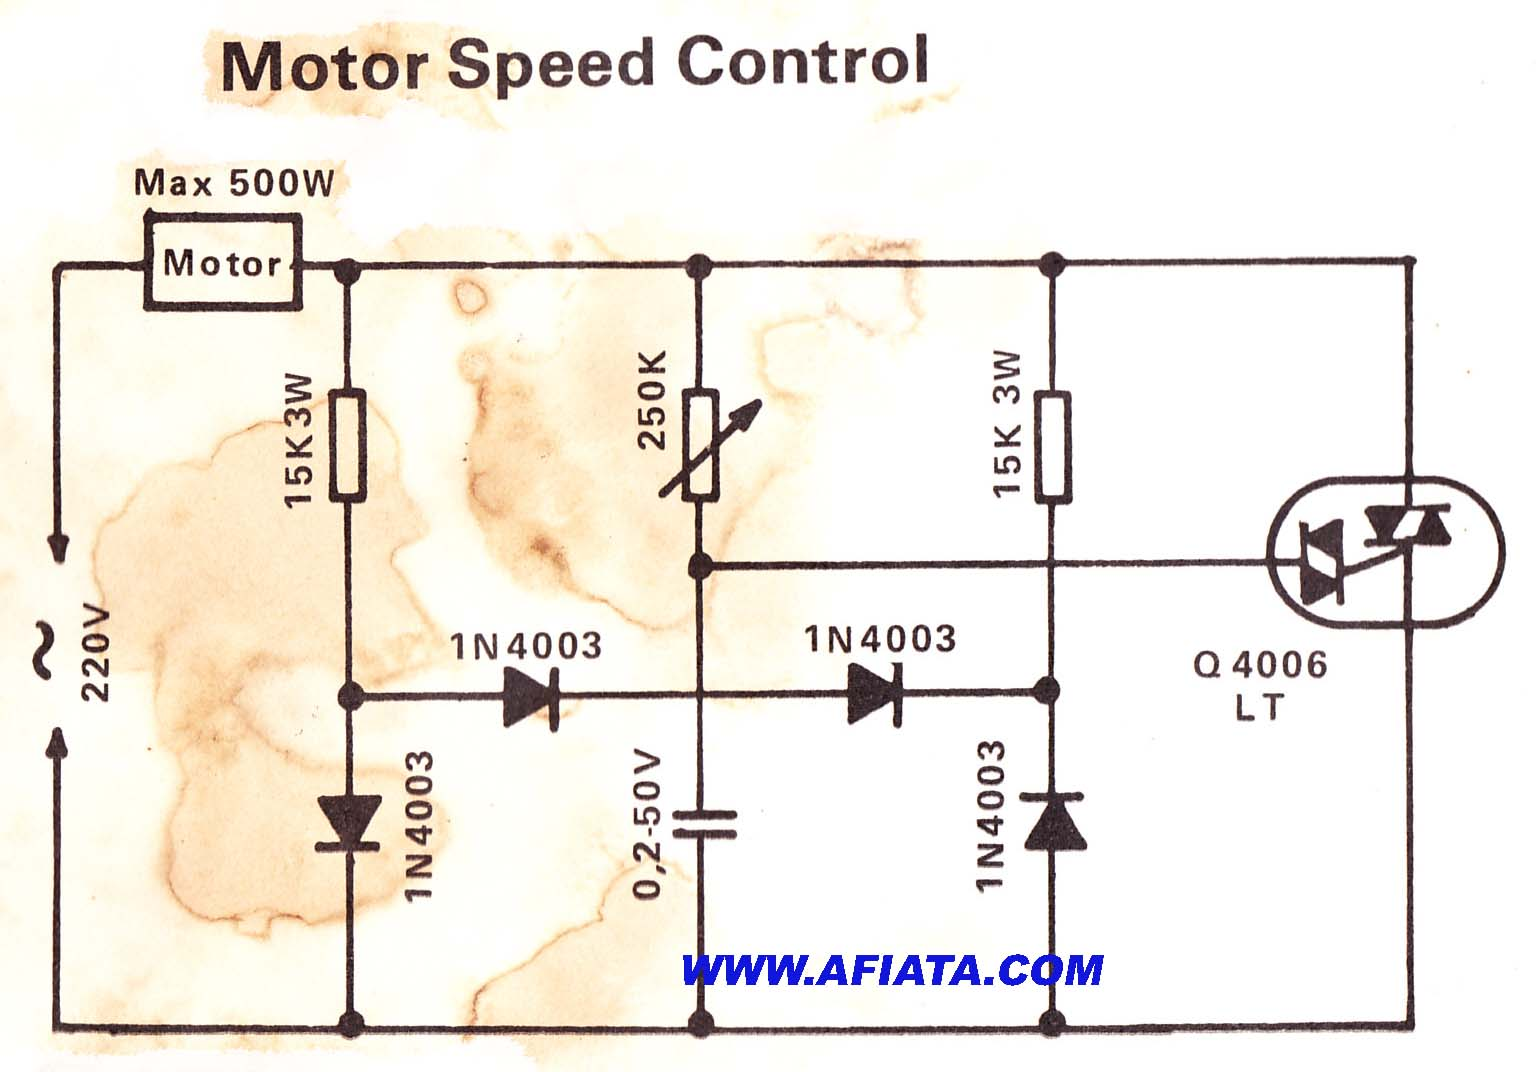 Motor speed control electronic circuit diagram and layout Speed control for ac motor